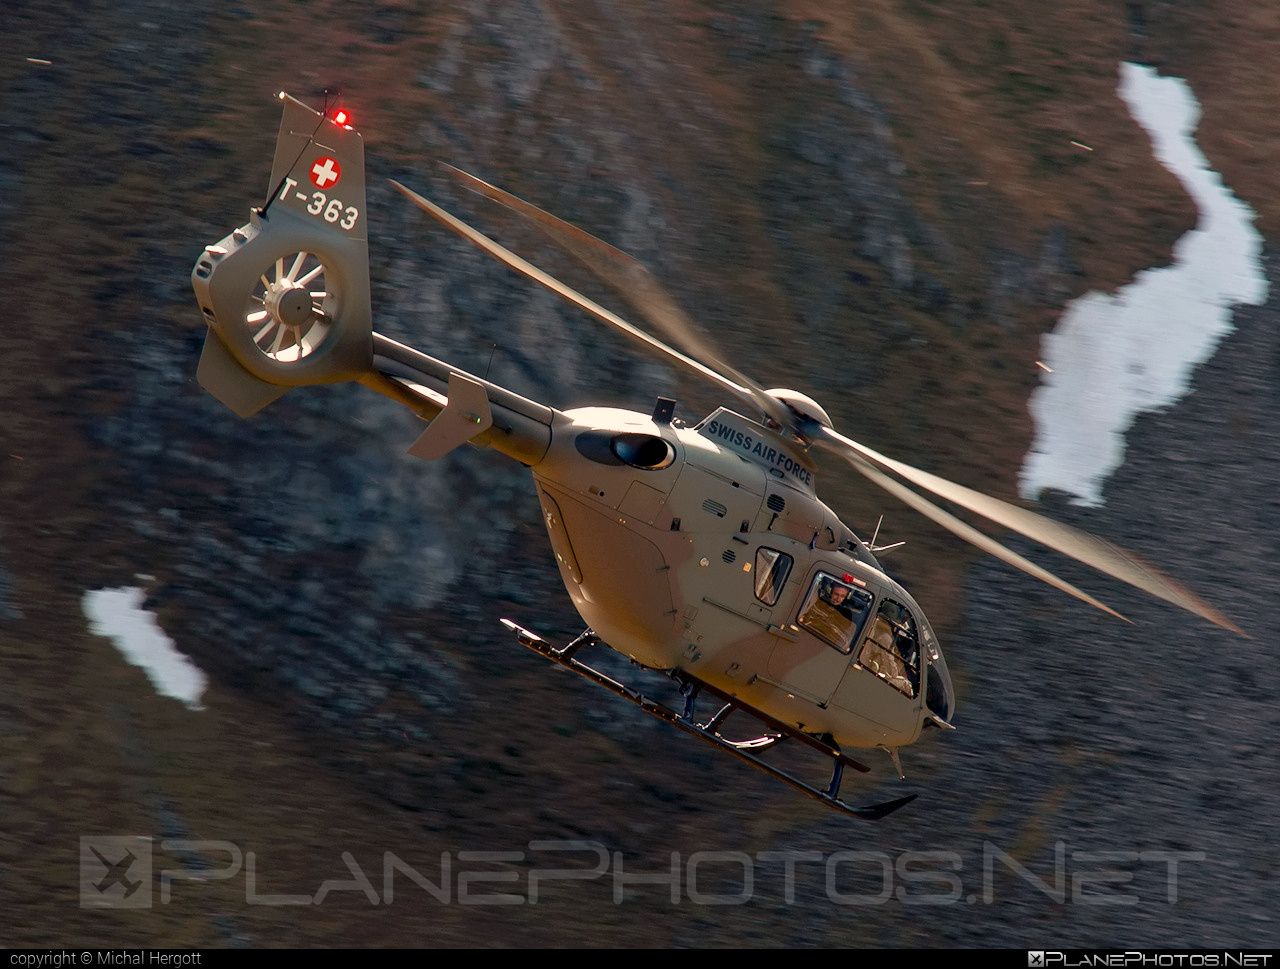 Eurocopter EC635 P2+ - T-363 operated by Schweizer Luftwaffe (Swiss Air Force) #eurocopter